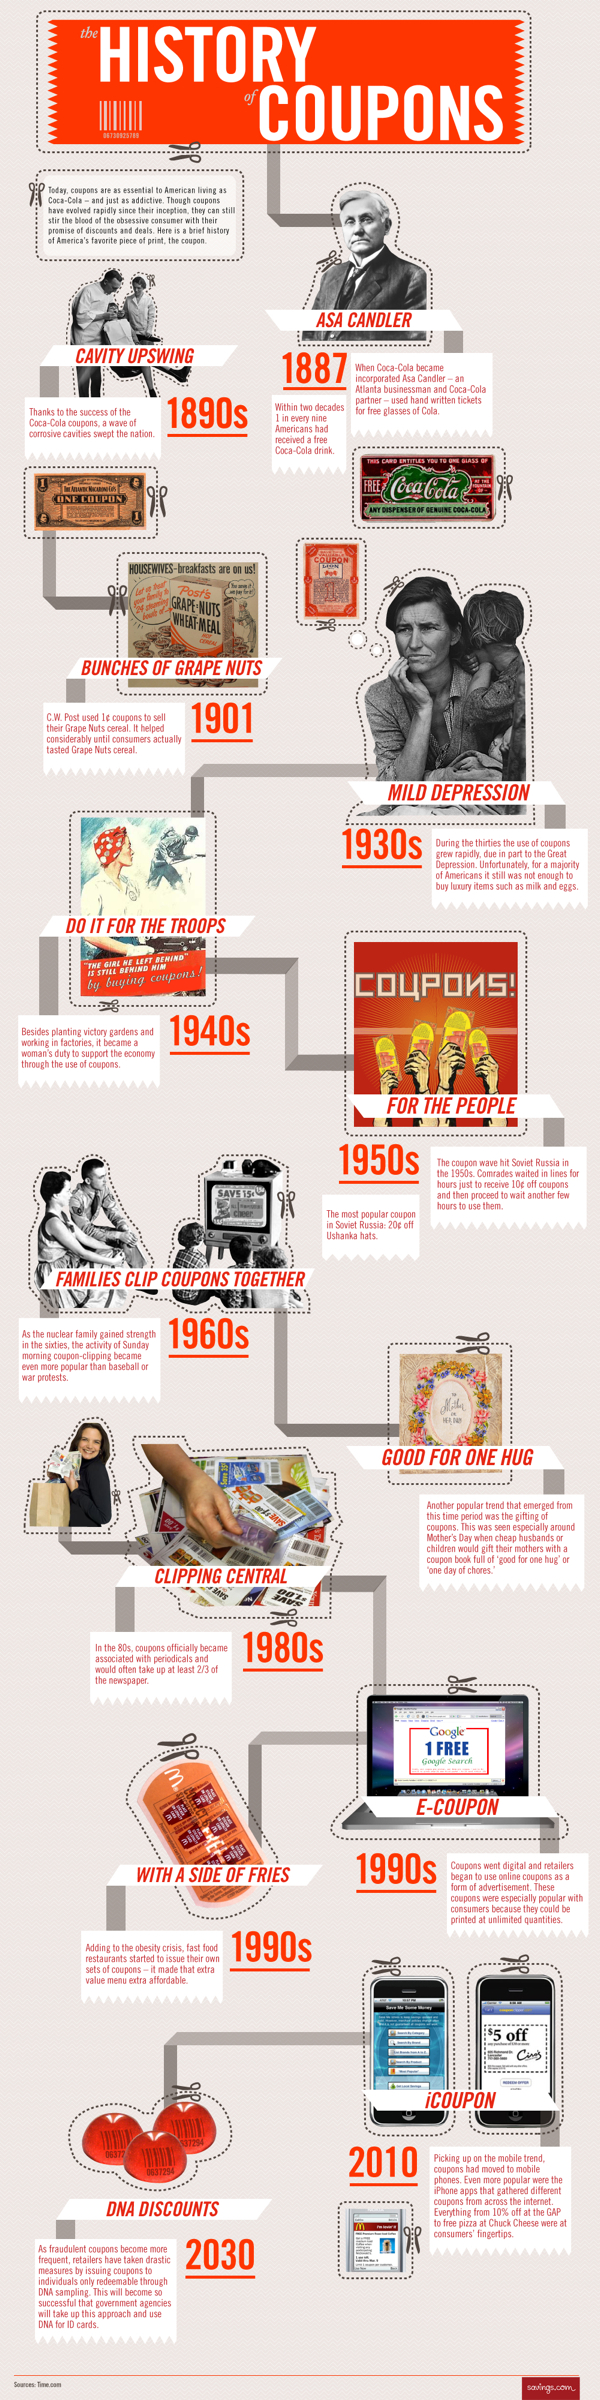 The History of Coupons